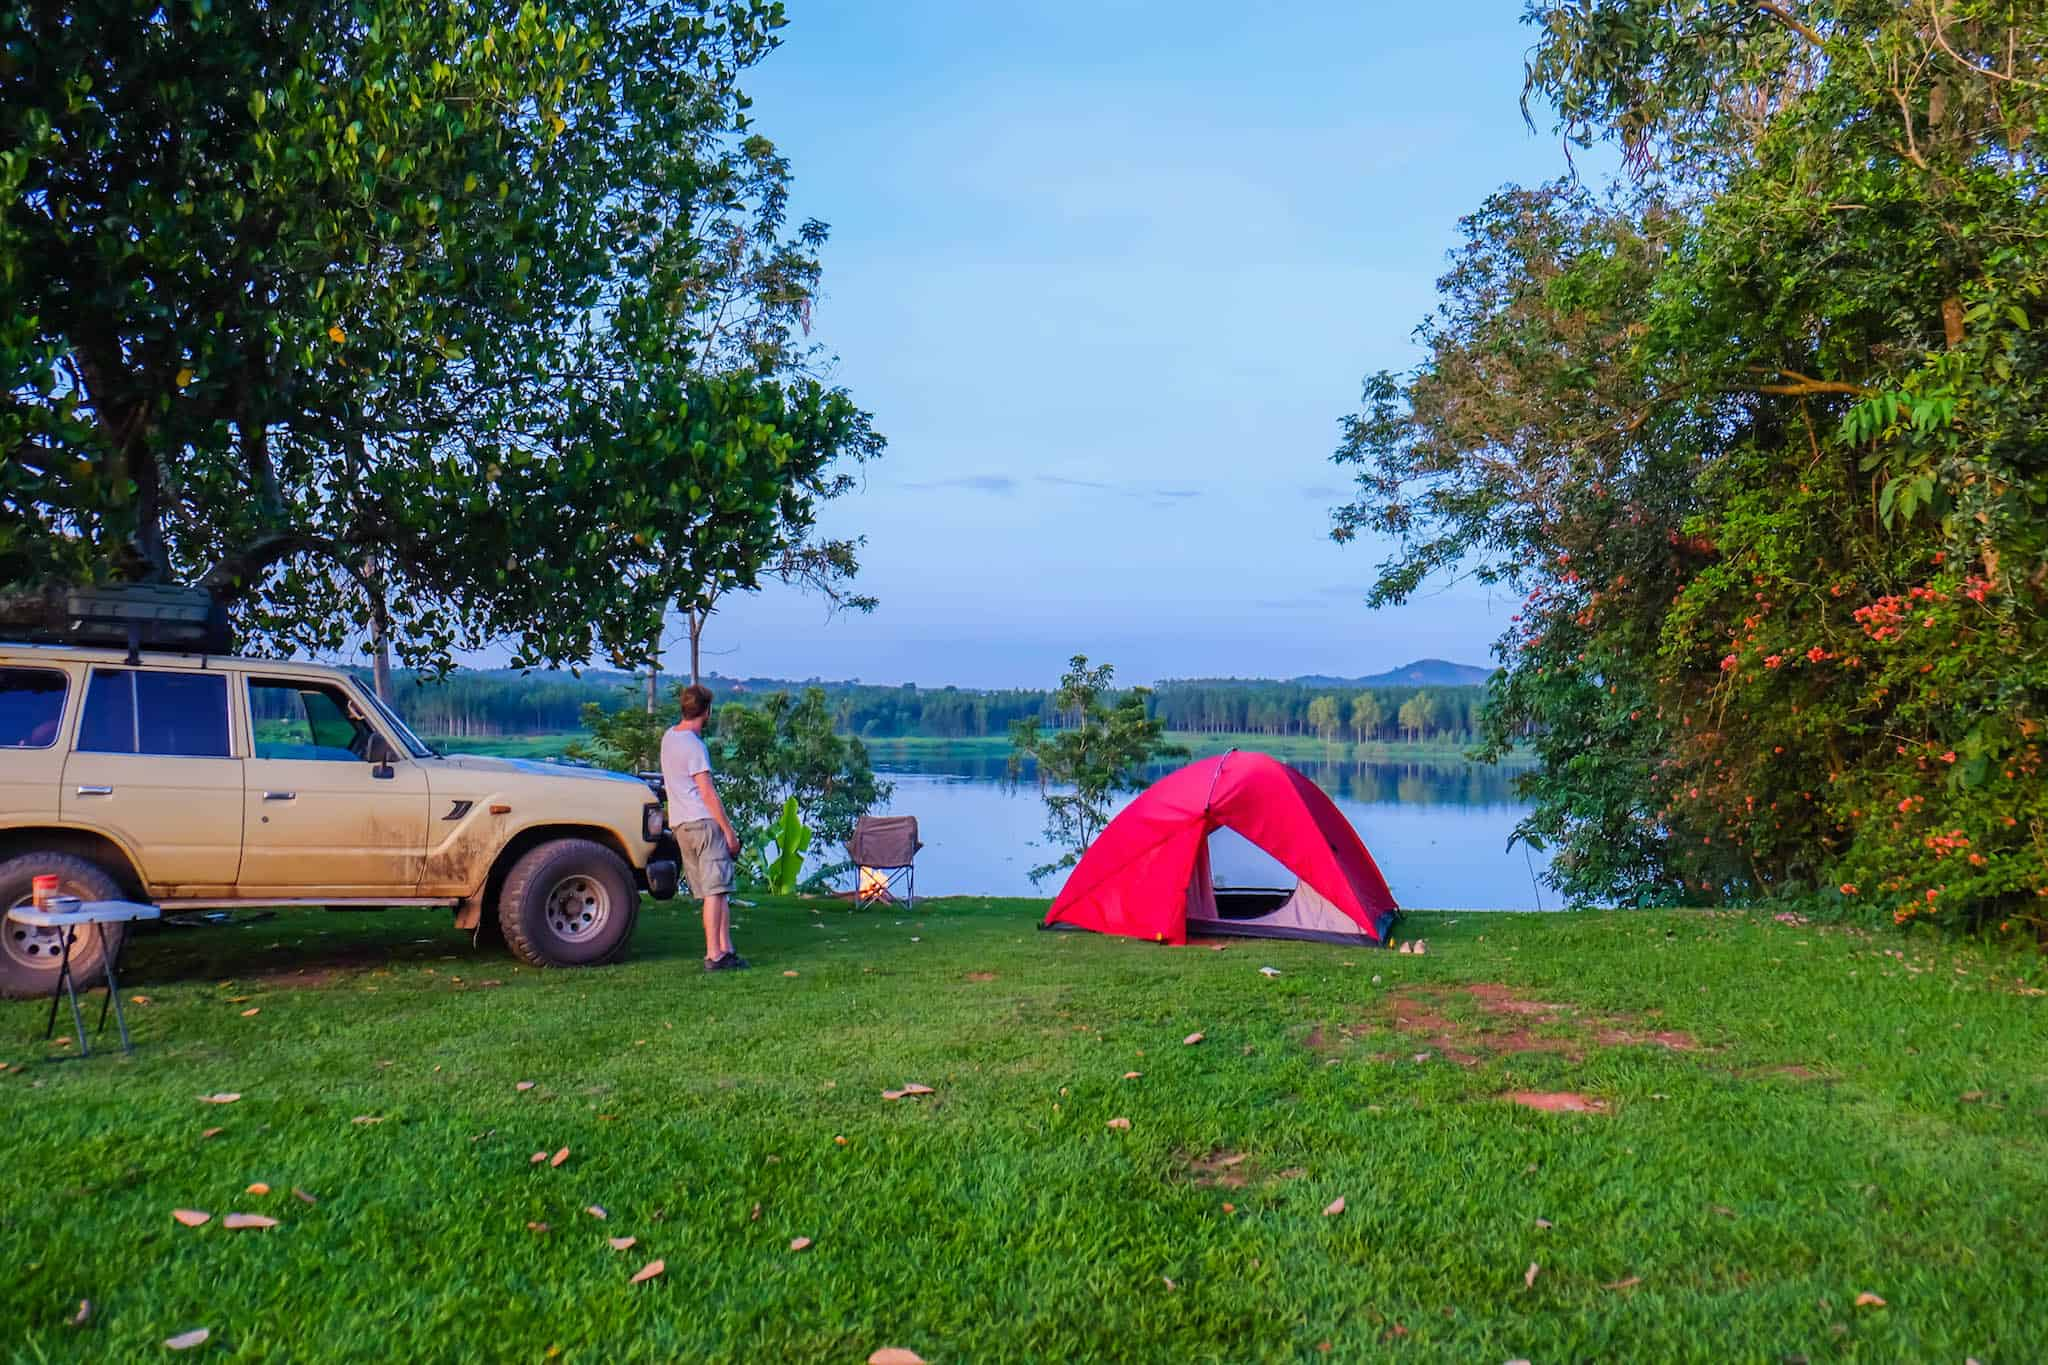 Camping at The Haven